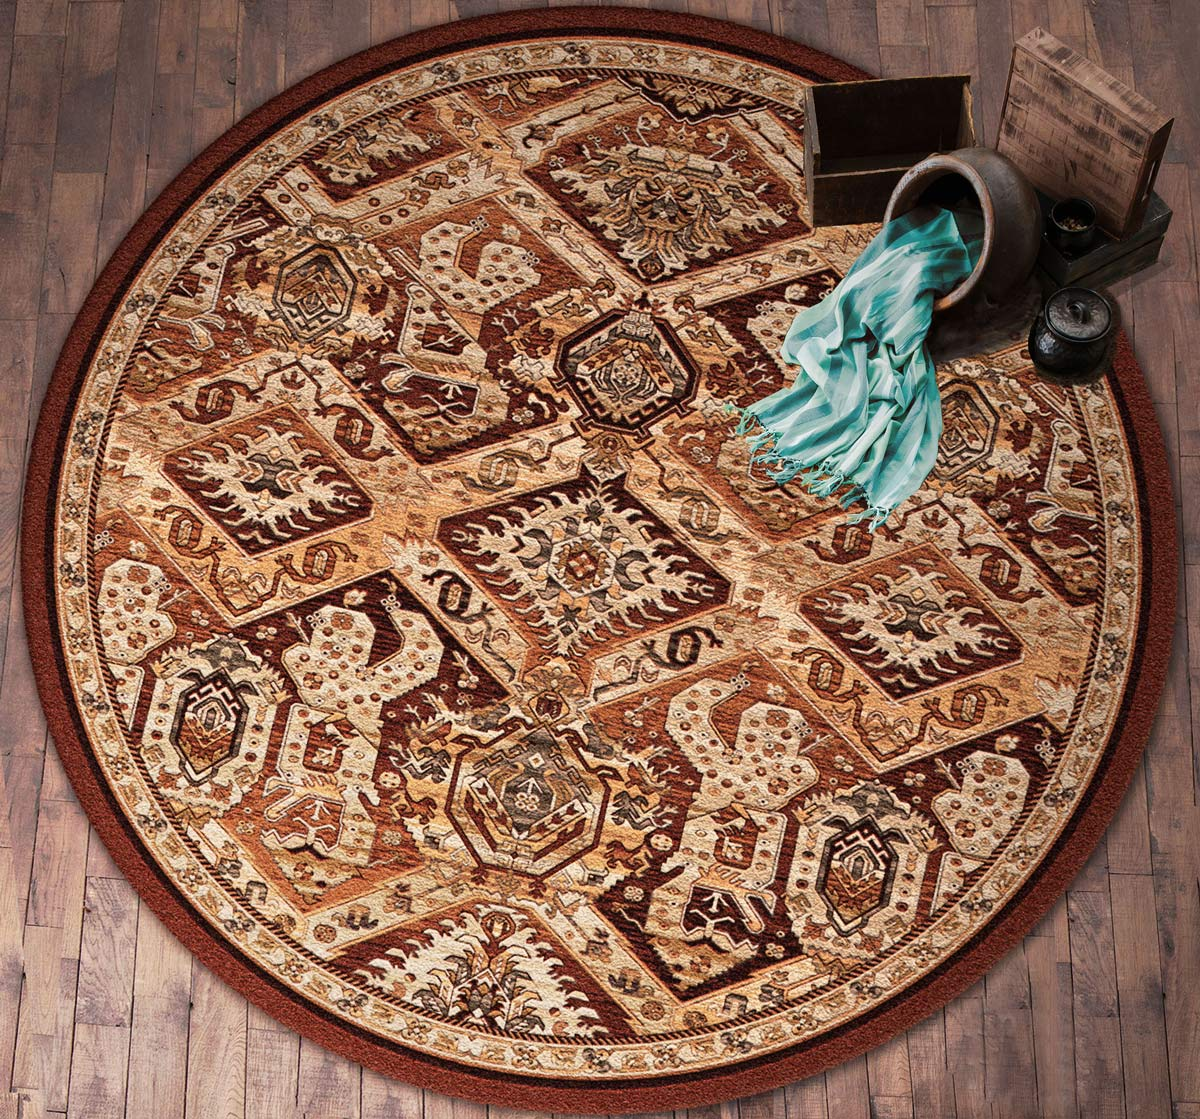 Spirit Dancer Rug - 11 Ft. Round